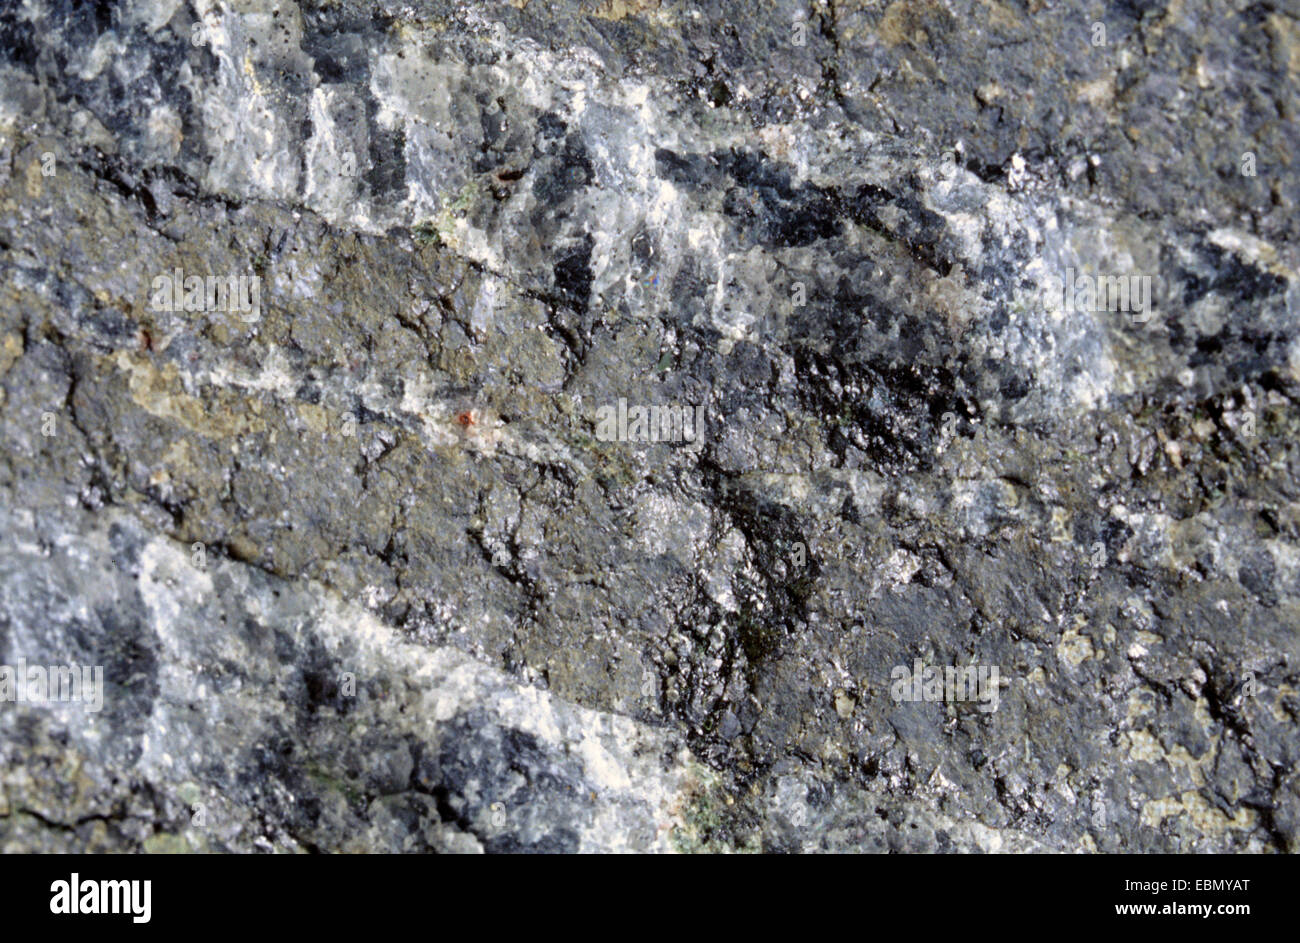 banded magnetic ore, Sweden - Stock Image